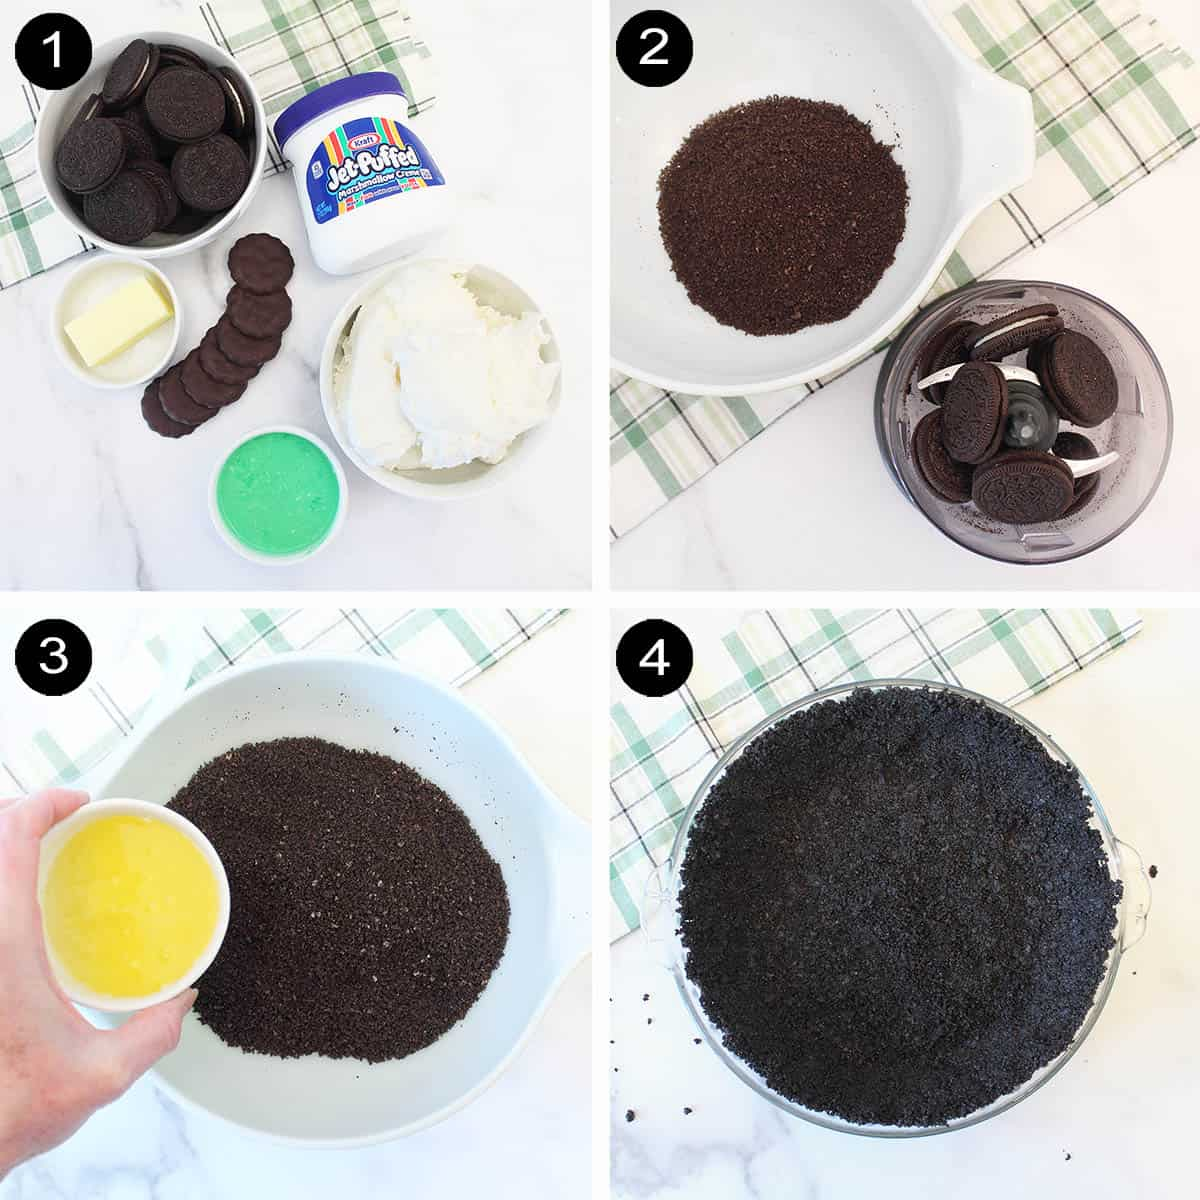 Making Oreo crust prep